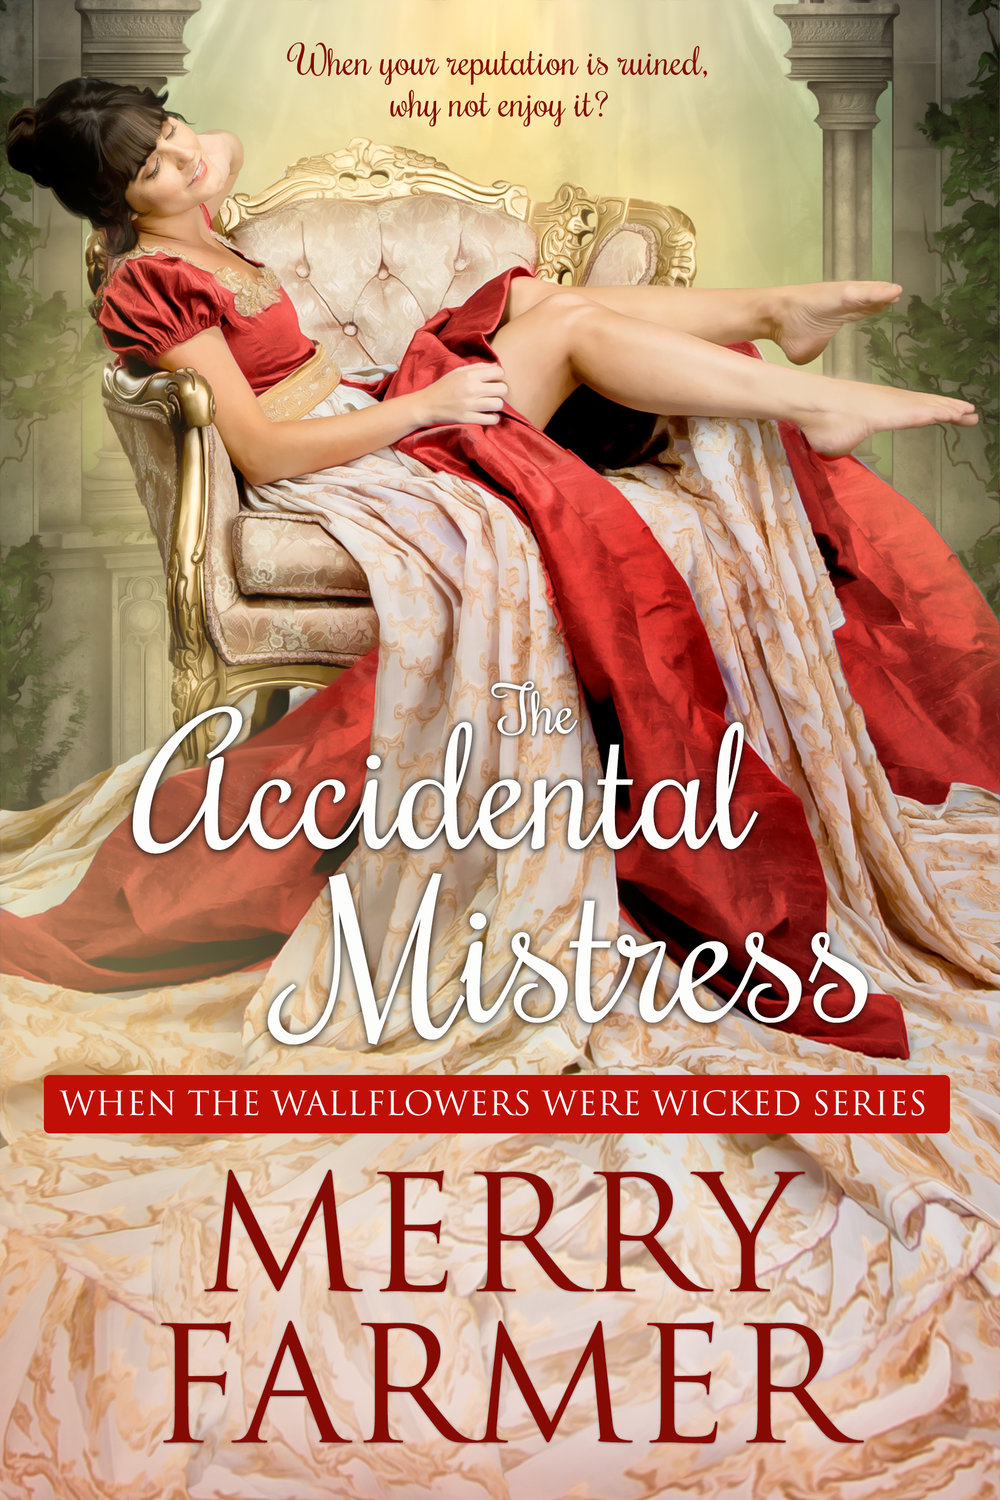 The Accidental Mistress (Book One) - When your reputation is ruined, why not enjoy it?For Regency wallflower, Miss Verity Barnes, nothing is more difficult than obtaining a voucher to Almack's Assembly Rooms…except salvaging her reputation after committing a grievous faux pas within ten minutes of stepping through the doors. But being cast out of fashionable society inspires Verity to seek out a different way of life—a way she believes will bring her happiness, comfort and security—becoming the mistress of a powerful man.Thomas Manfred, Marquess of Landsbury, isn't looking for a biddable woman to warm his bed. His fortunes lie on the brink of ruin, so he needs a wealthy wife, and Lady Charlotte Grey, darling of the ton, seems to be the only answer. But he cannot forget the adorable, amusing, and naïve young beauty who humiliated herself at Almack's. And when Verity shows up on his doorstep, demanding he take her as his mistress as amends for the part he played in her ruin, he simply cannot resist the temptation.But Lady Charlotte isn't willing to give up her position at Thomas's side or share his attentions with anyone. Her acid tongue could ruin Verity's reputation even more thoroughly than it has already been destroyed…unless fate intervenes.A light-hearted, fun, SUPER steamy, Regency romp—a quick read, not to be taken too seriously.PLEASE BE ADVISED – Steam Level: Five-Alarm Fire with a generous helping of F-bombs. Don't say you weren't warned.